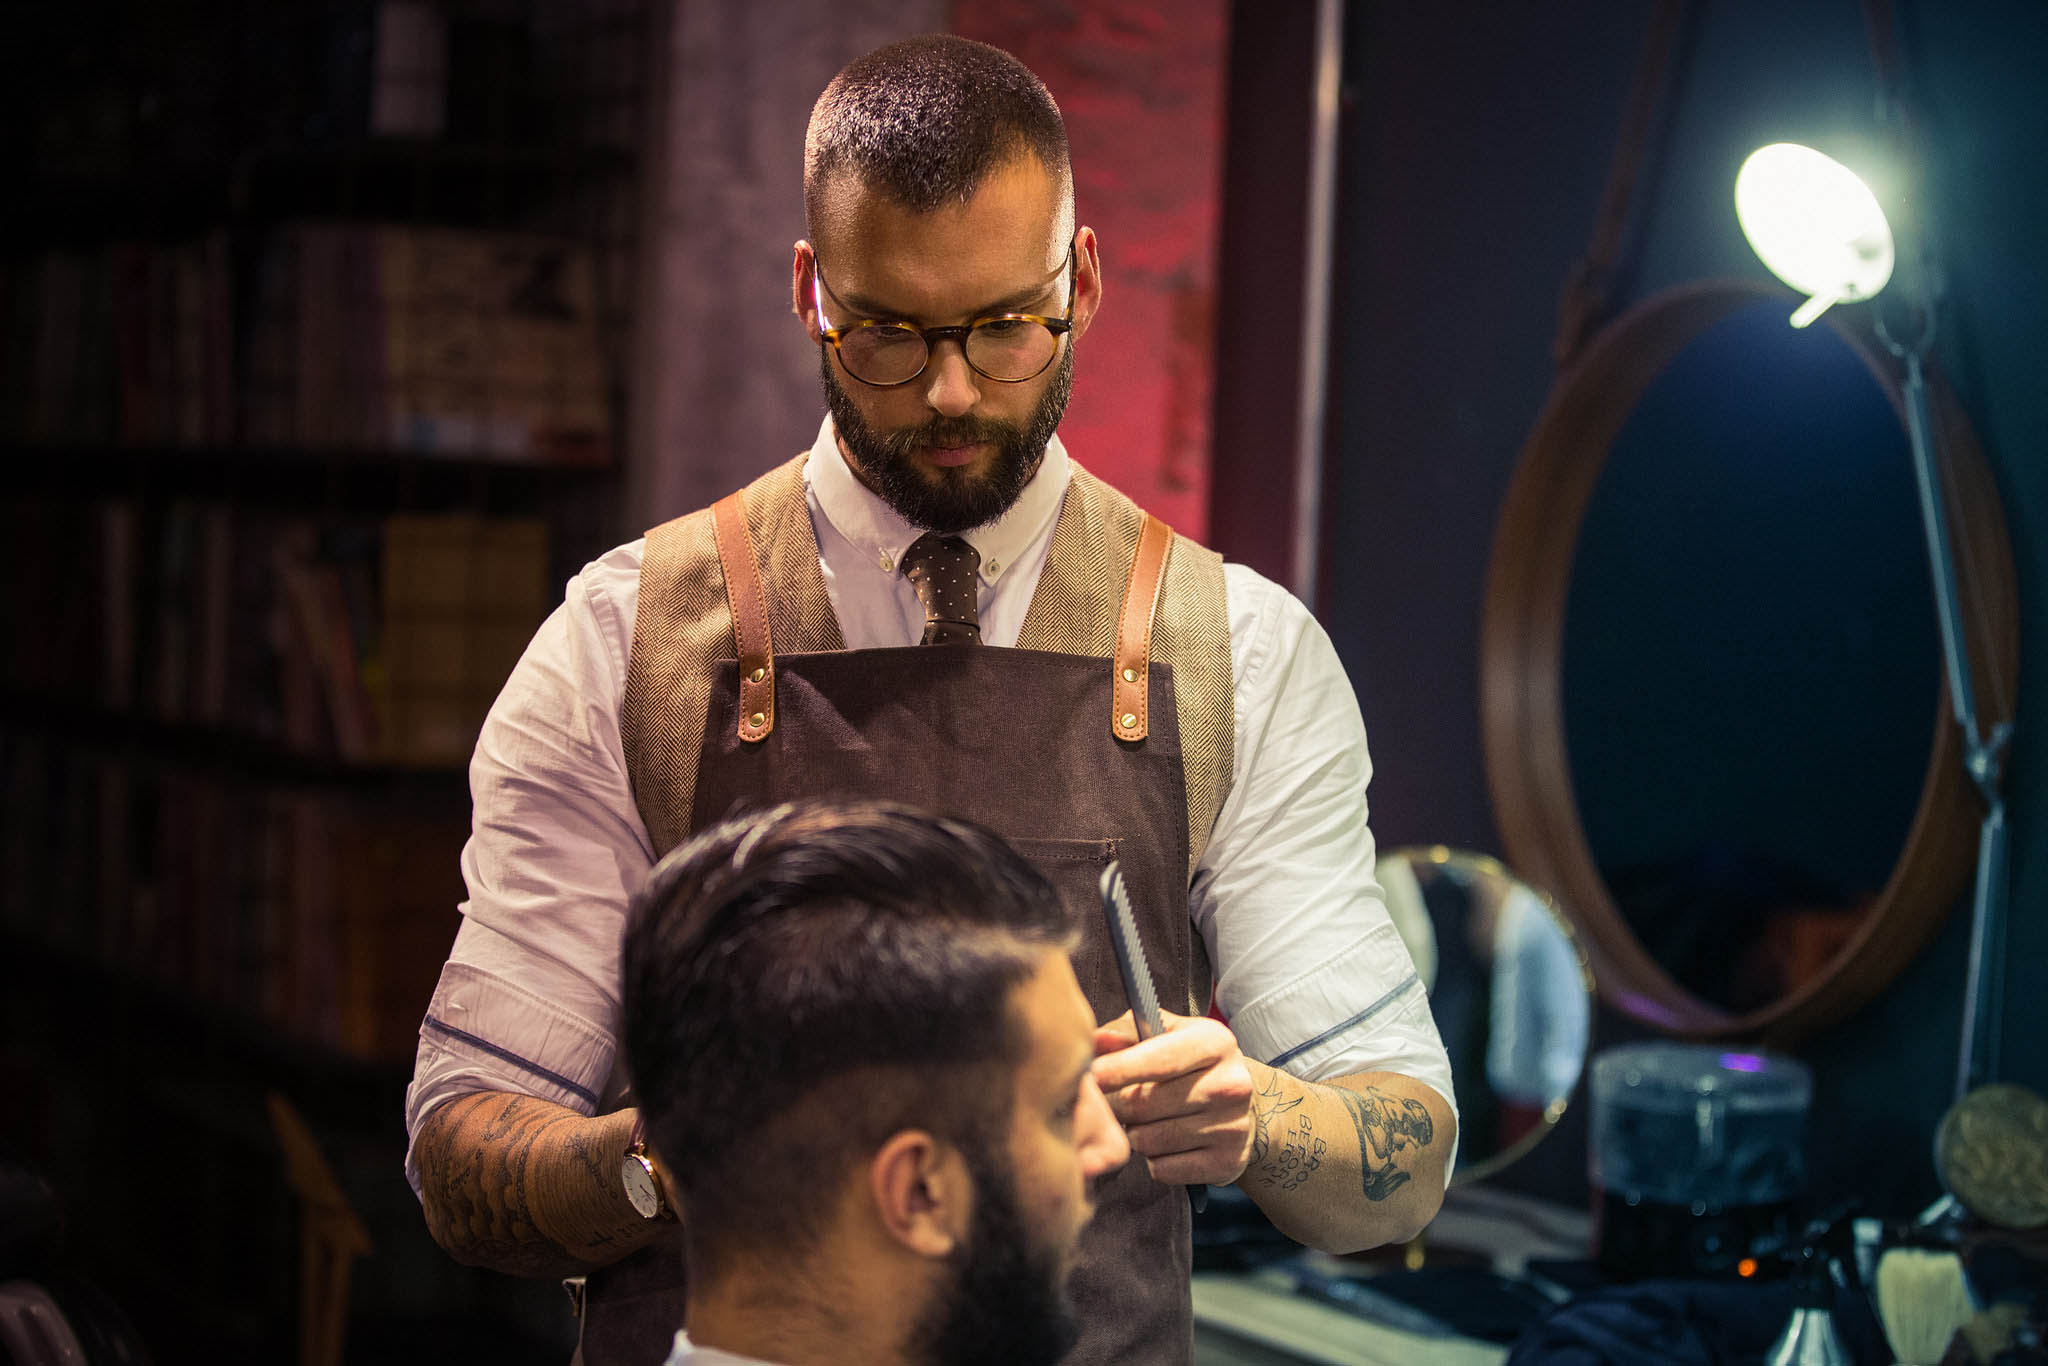 legends frankfurt bar club barber hairdresser patrick schmetzer